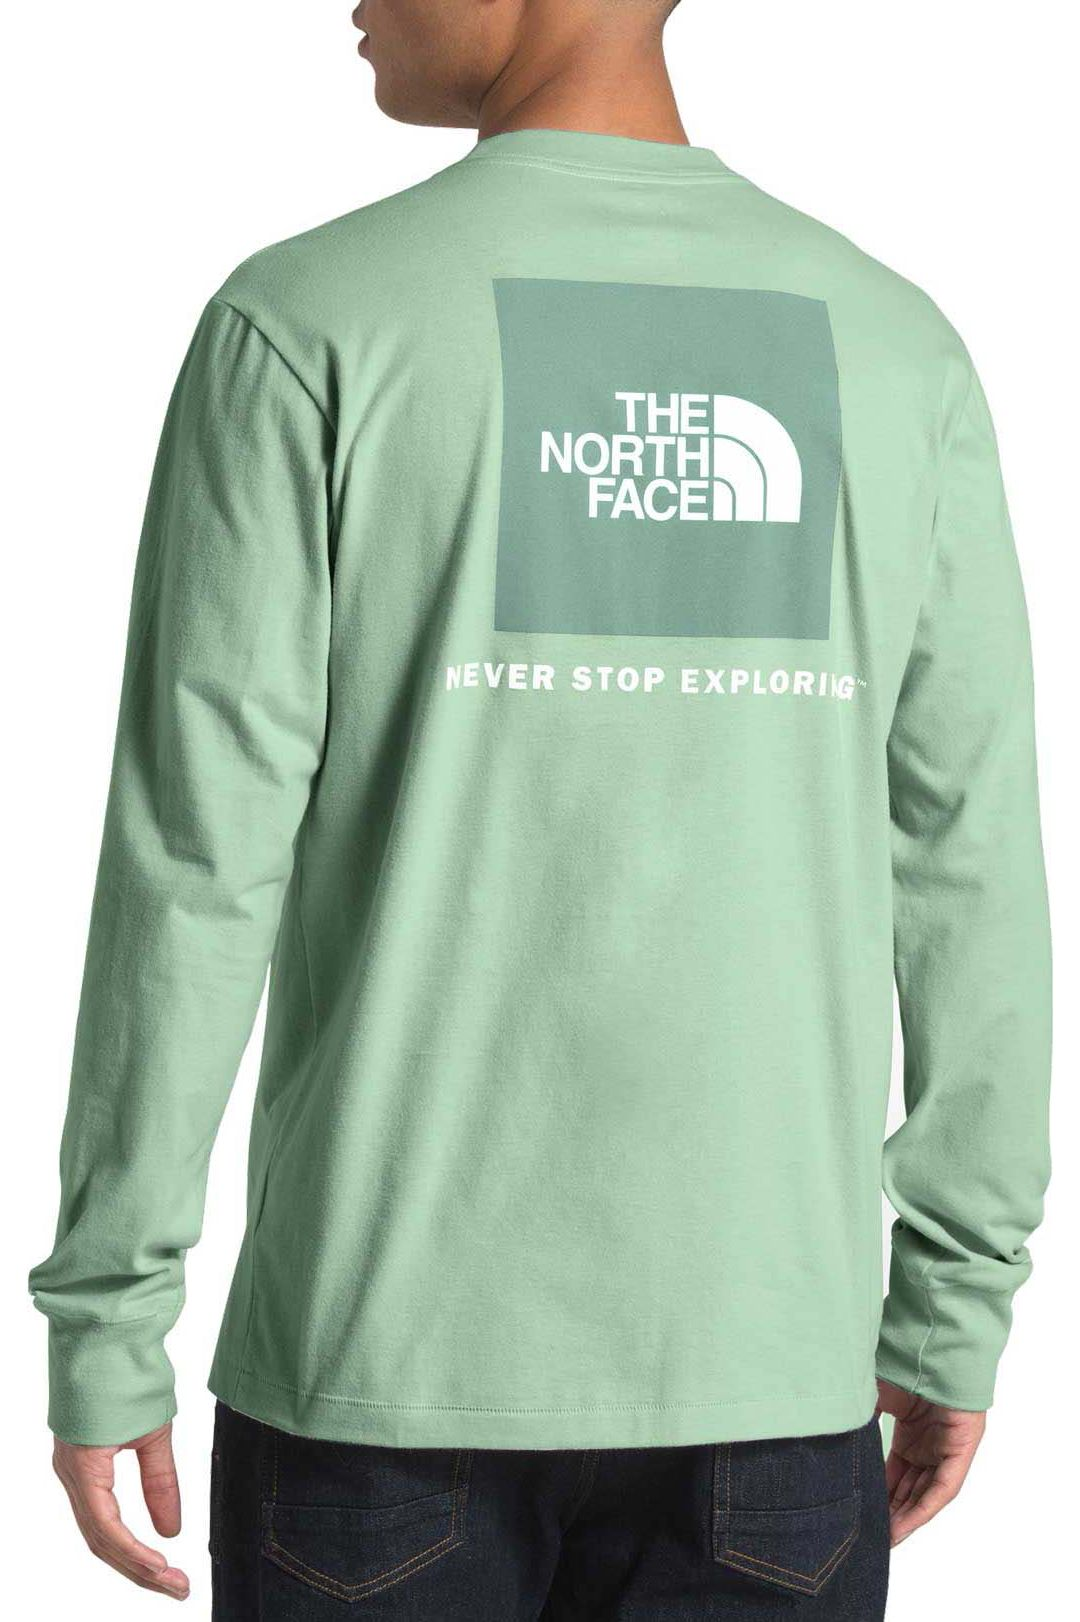 742a35866 The North Face Men's Long Sleeve Red Box Fashion T-Shirt